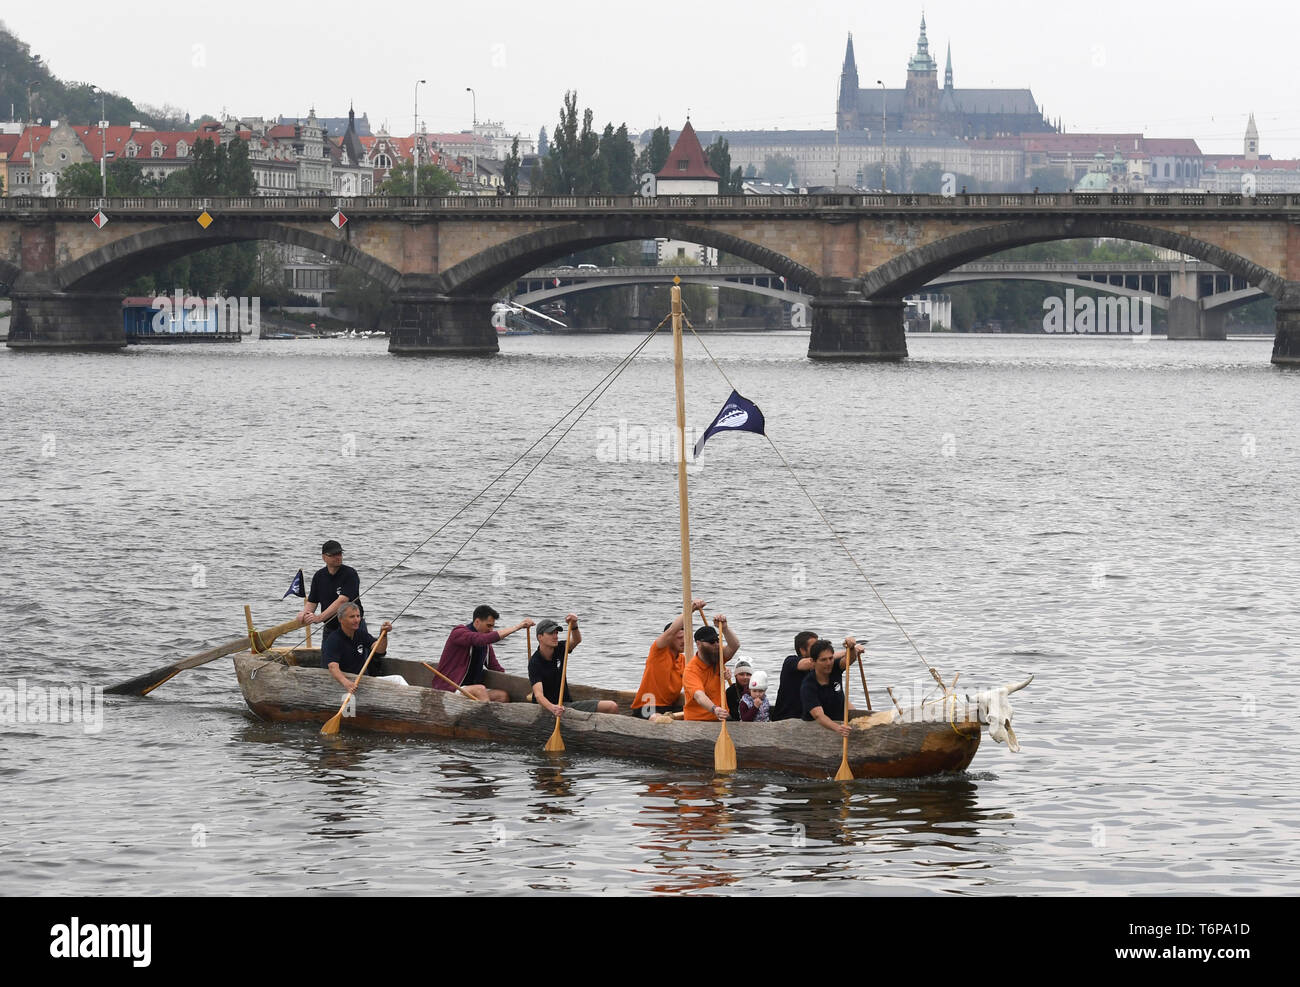 Prague, Czech Republic. 01st May, 2019. Official start of Monoxylon III international expedition that will sail the Mediterranean from Greece to Crete in boat made of one tree trunk, the replica of a neolithic dugout canoe, took place on Vltava river at Rasinovo nabrezi, Prague, Czech Republic, on Wednesday, May 1st, 2019. Credit: Michal Krumphanzl/CTK Photo/Alamy Live News - Stock Image